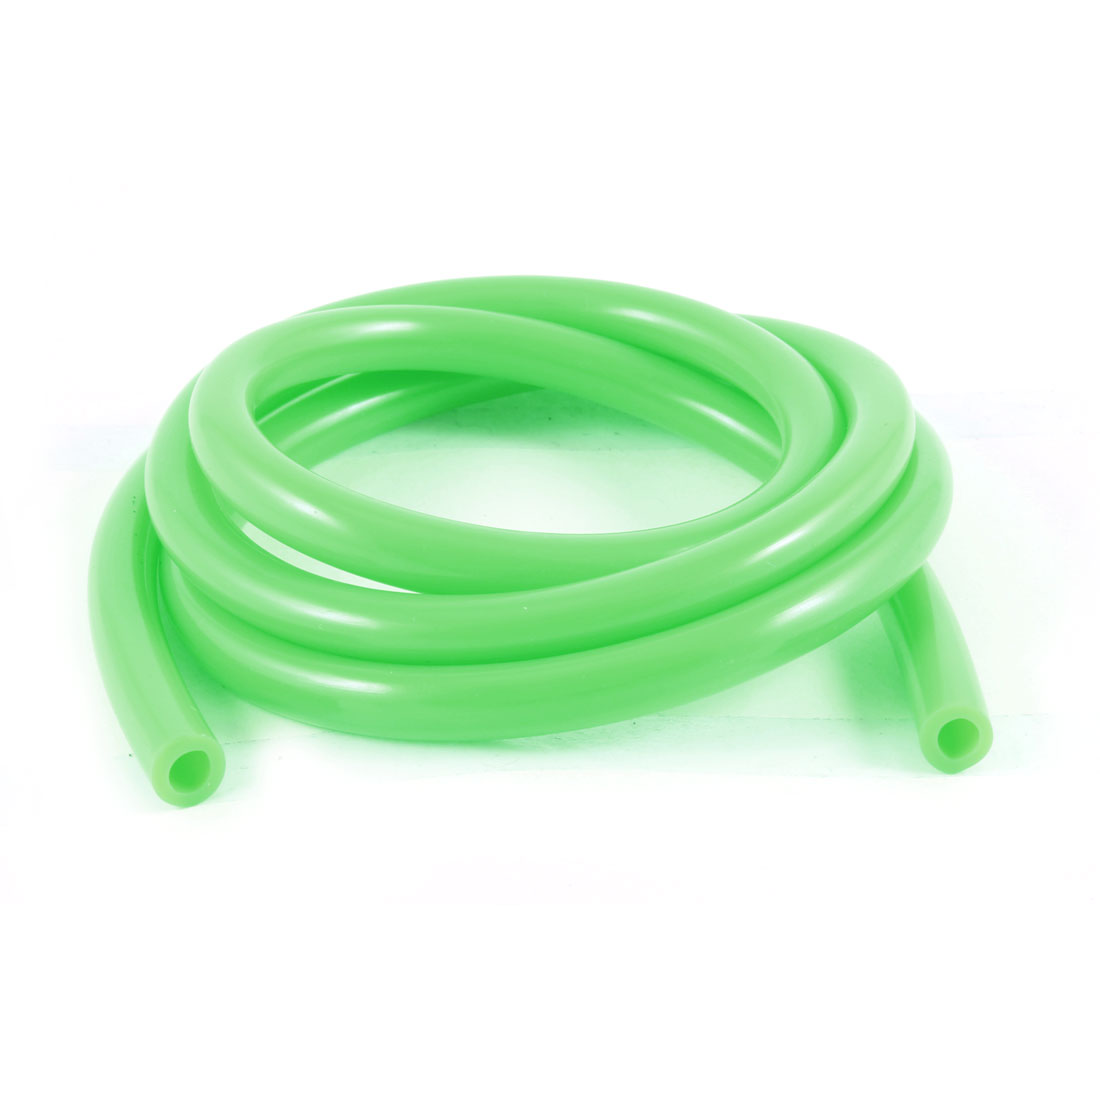 Motorcycle Modified Parts 100cm Length Green Rubber Oil Tube Pipe Line